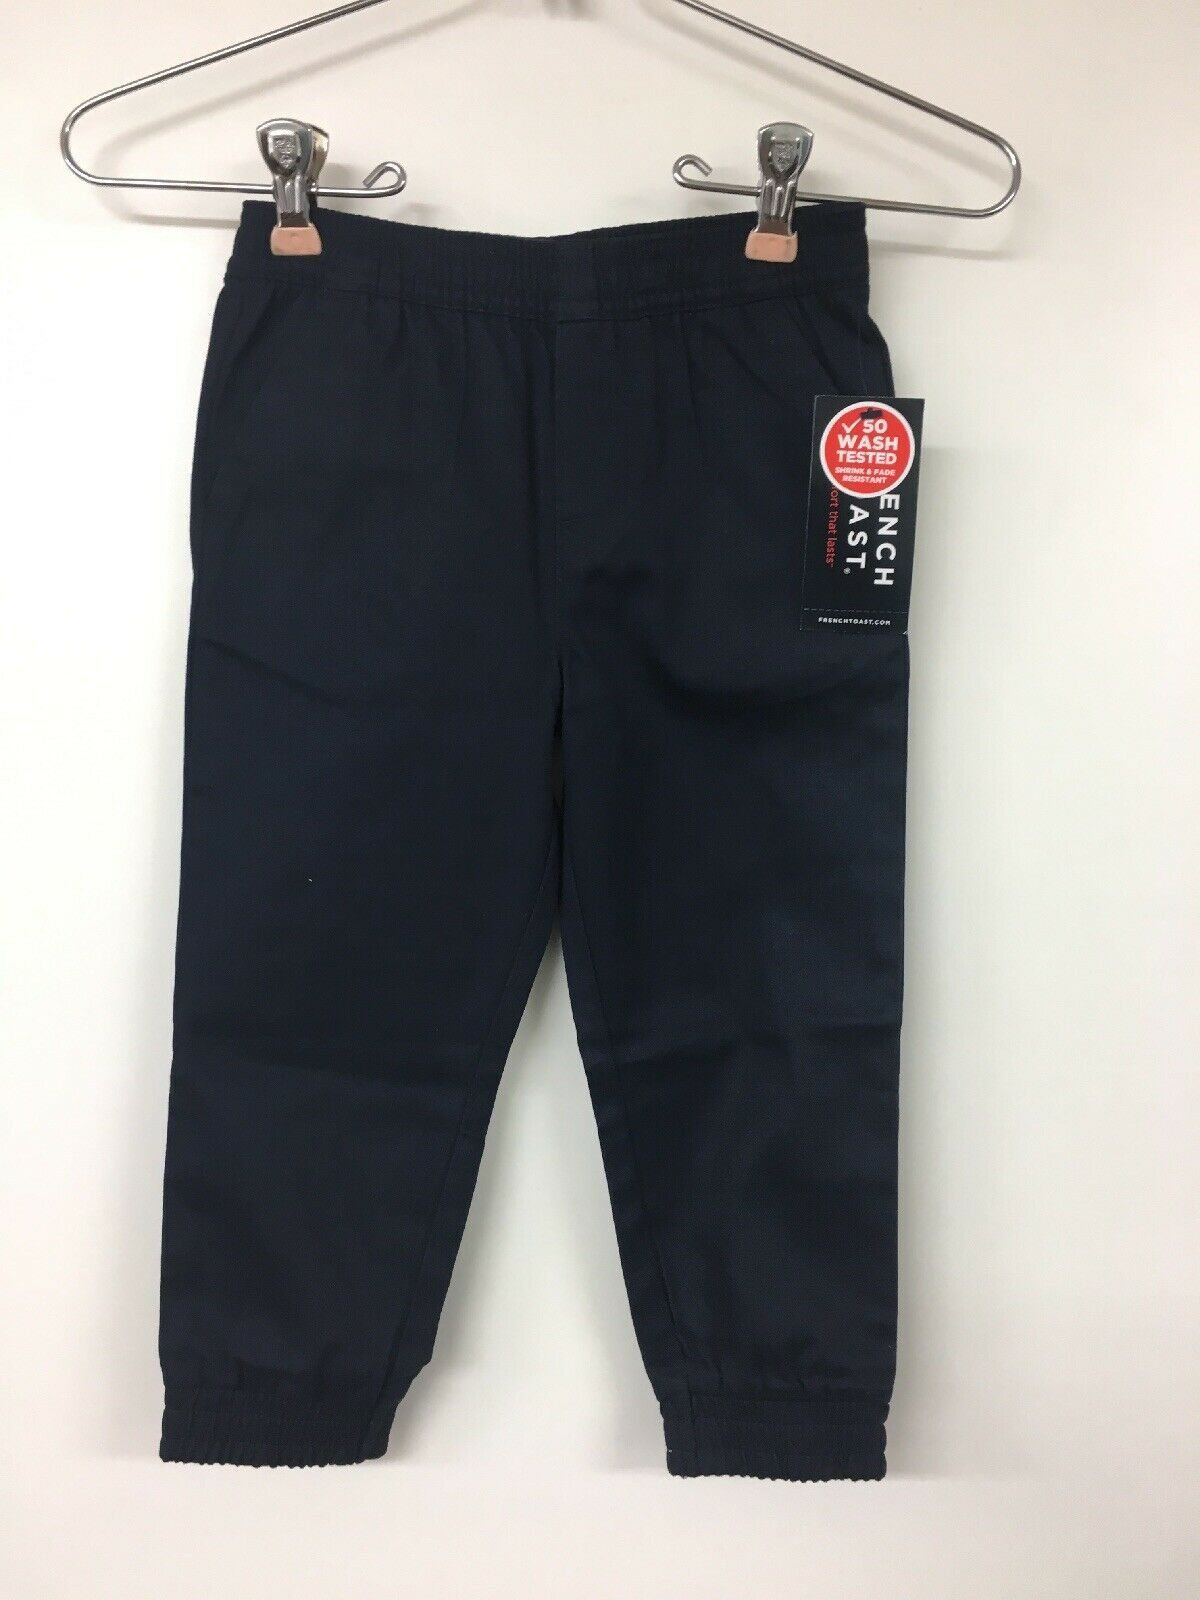 Primary image for French Toast Pull On Joggers, Navy, 3T